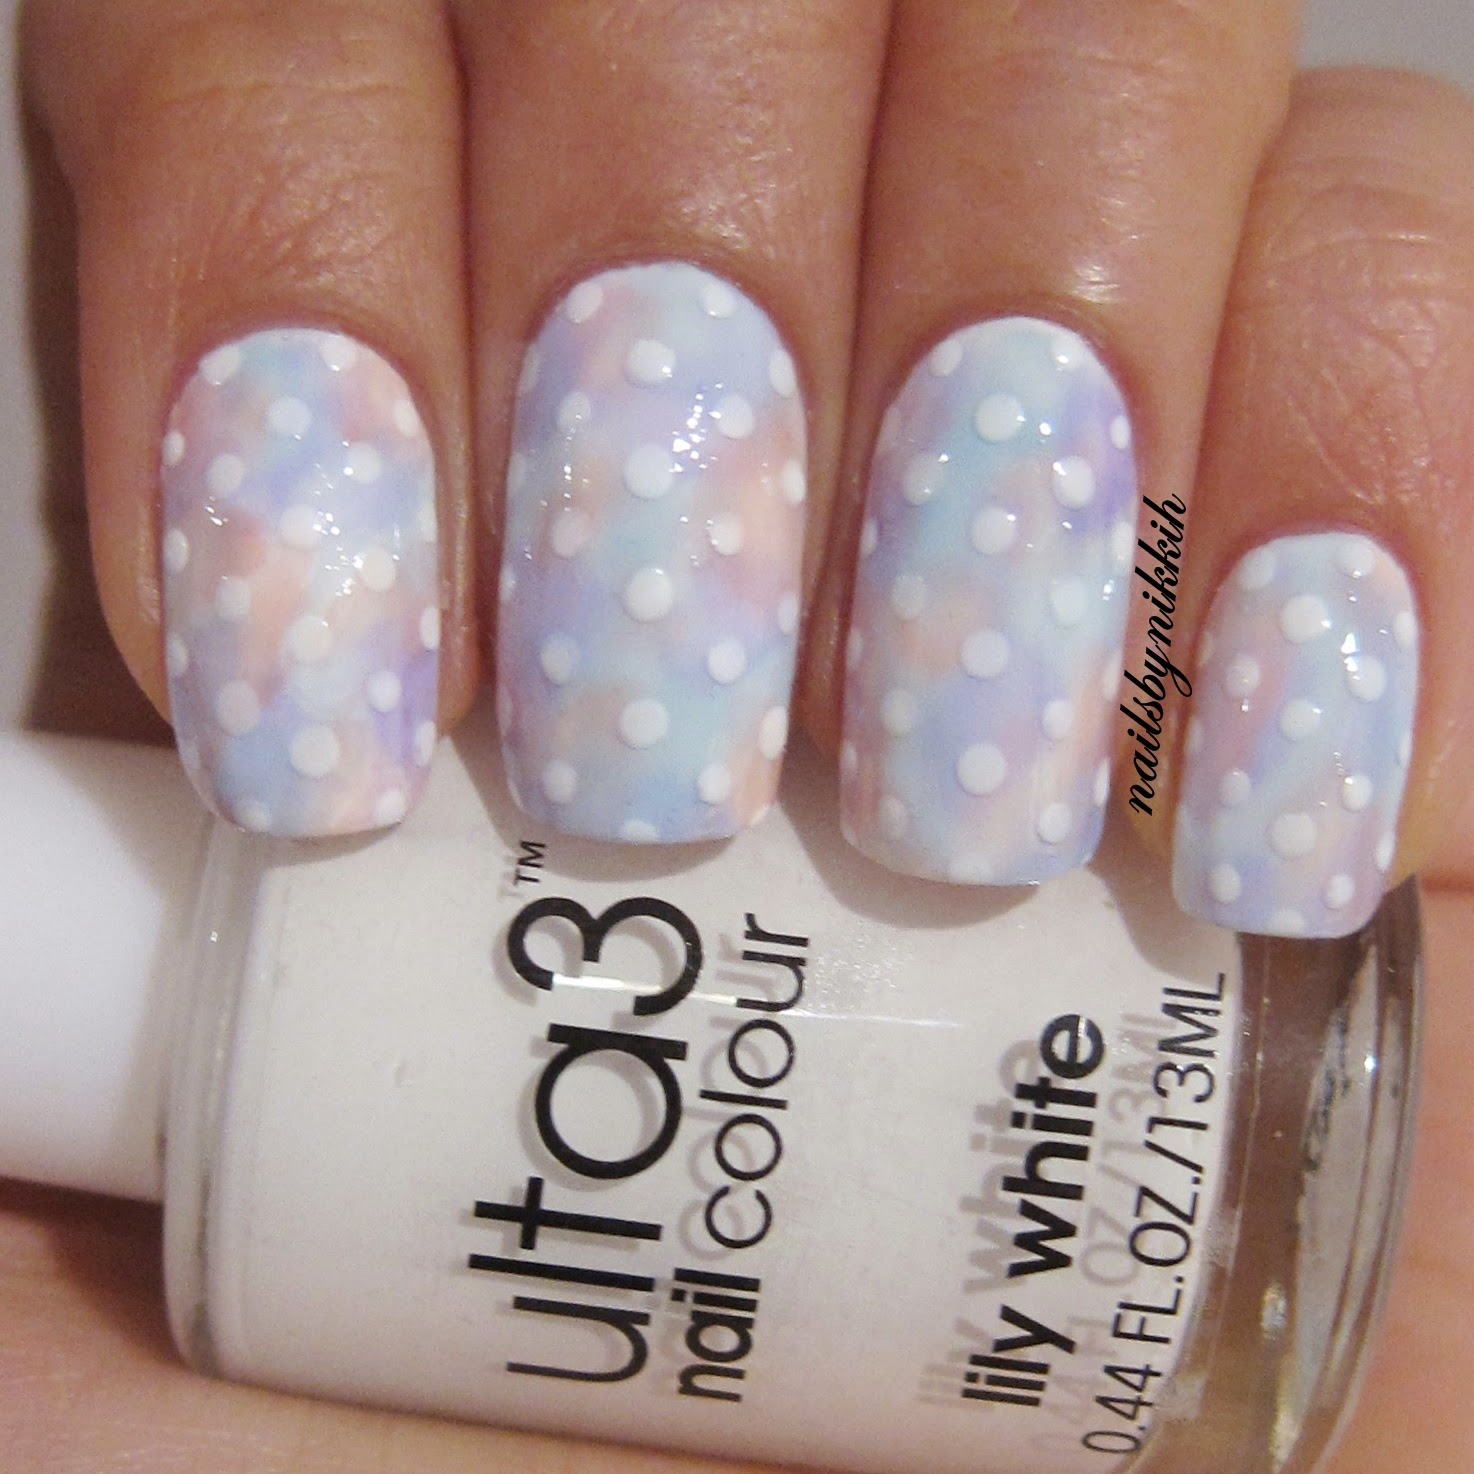 The Nail Art Trend: [Tutorial] Watercolour nails w/ ulta3